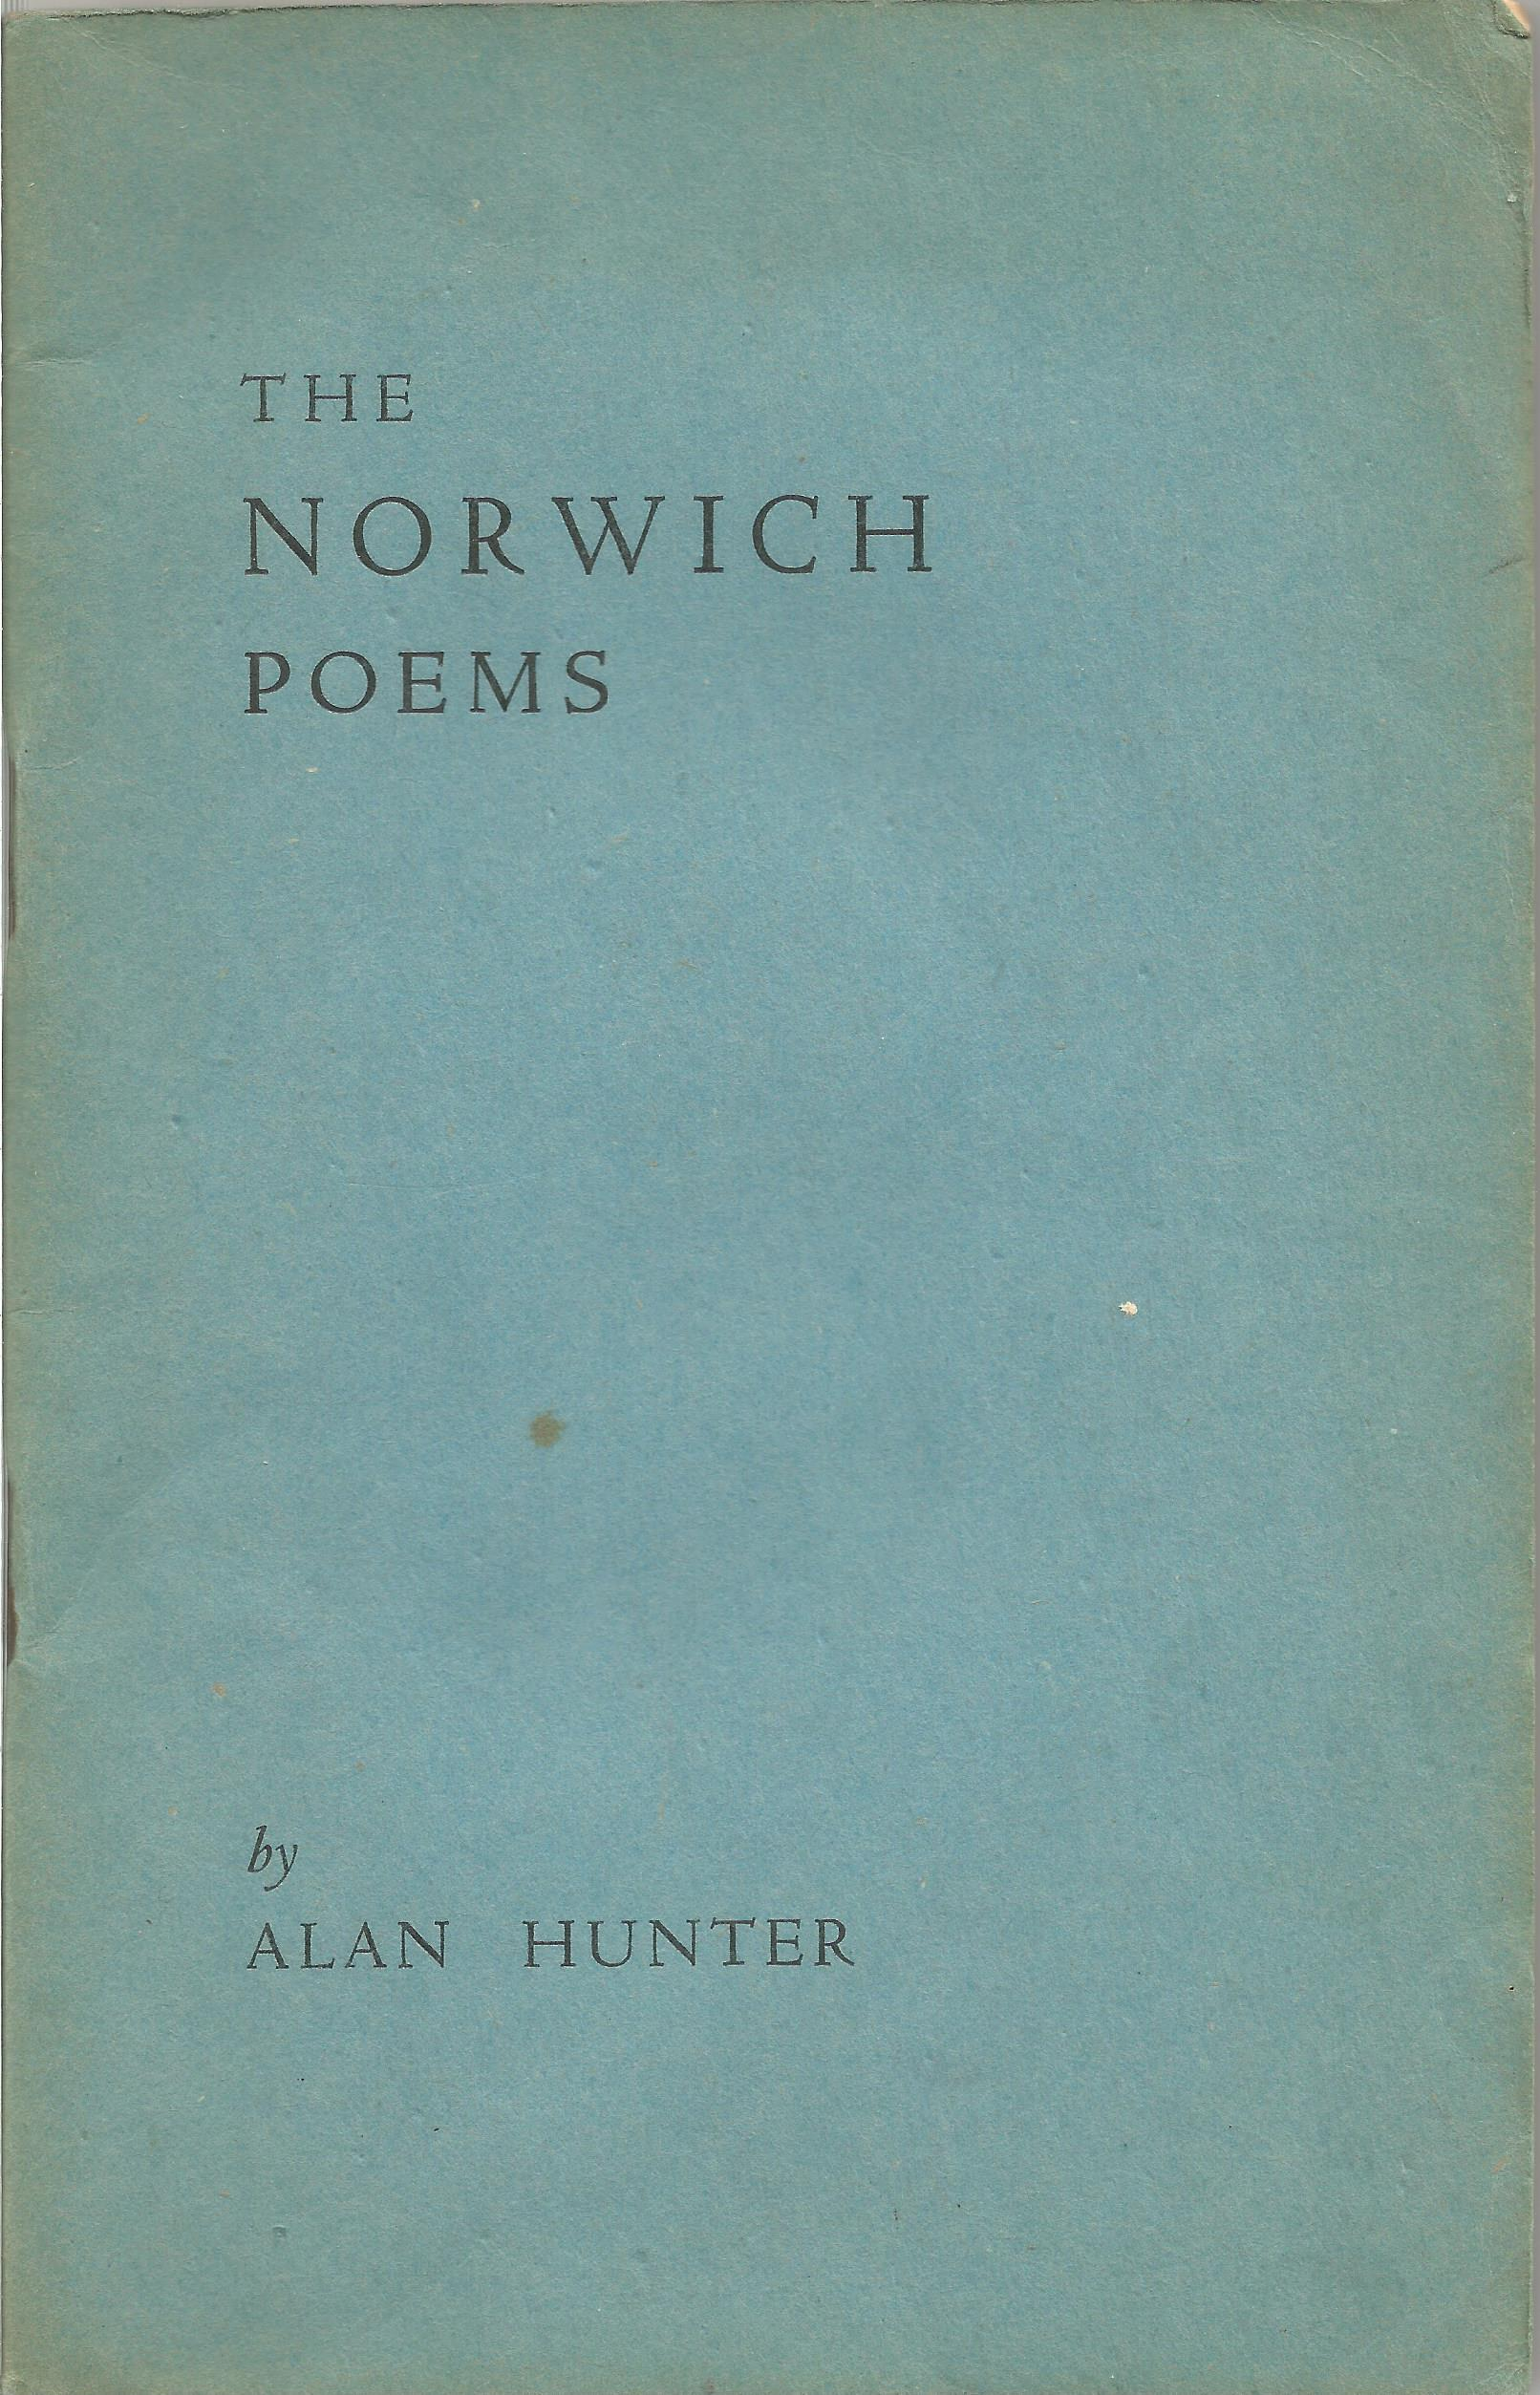 Alan Hunter Paperback Book The Norwich Poems signed by the Author on the Title Page and dated 1945